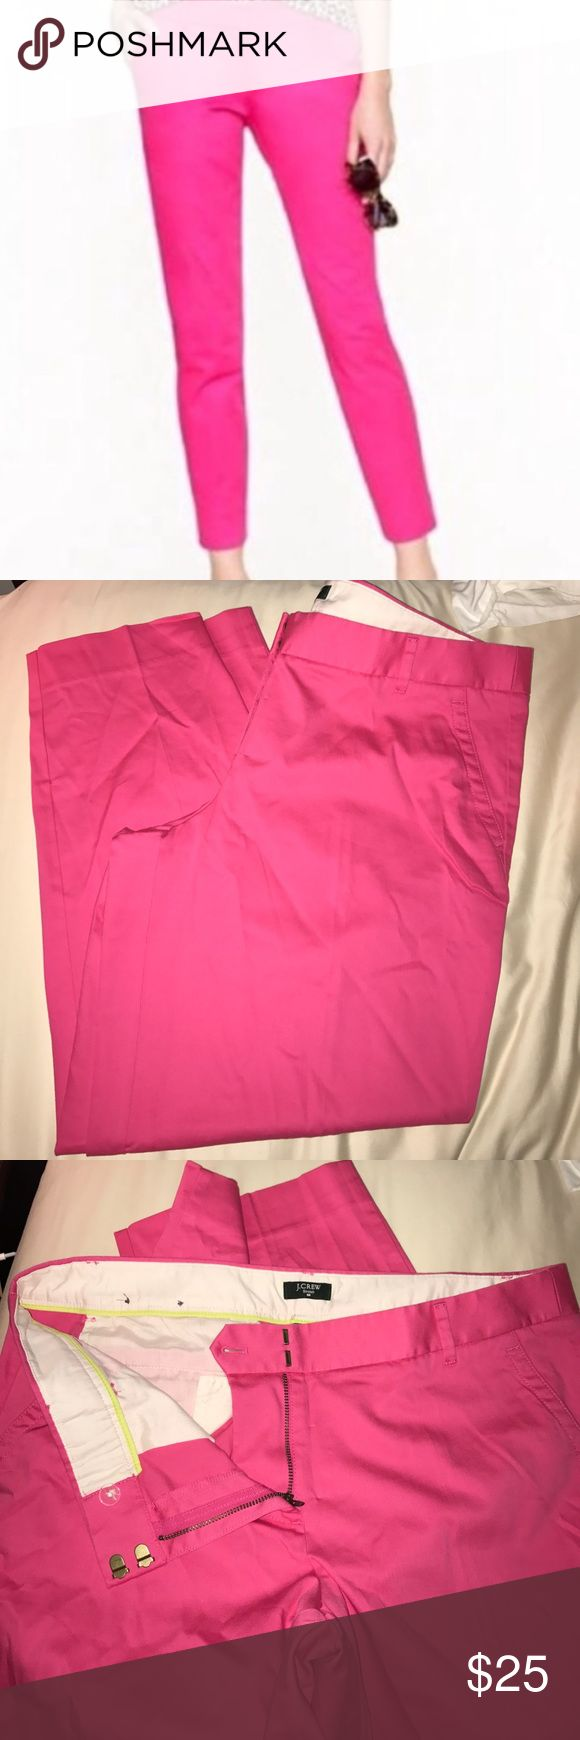 J Crew Pink Trouser Capri J Crew Pink Trouser Capri. Great condition perfect for summer!! J. Crew Pants Capris